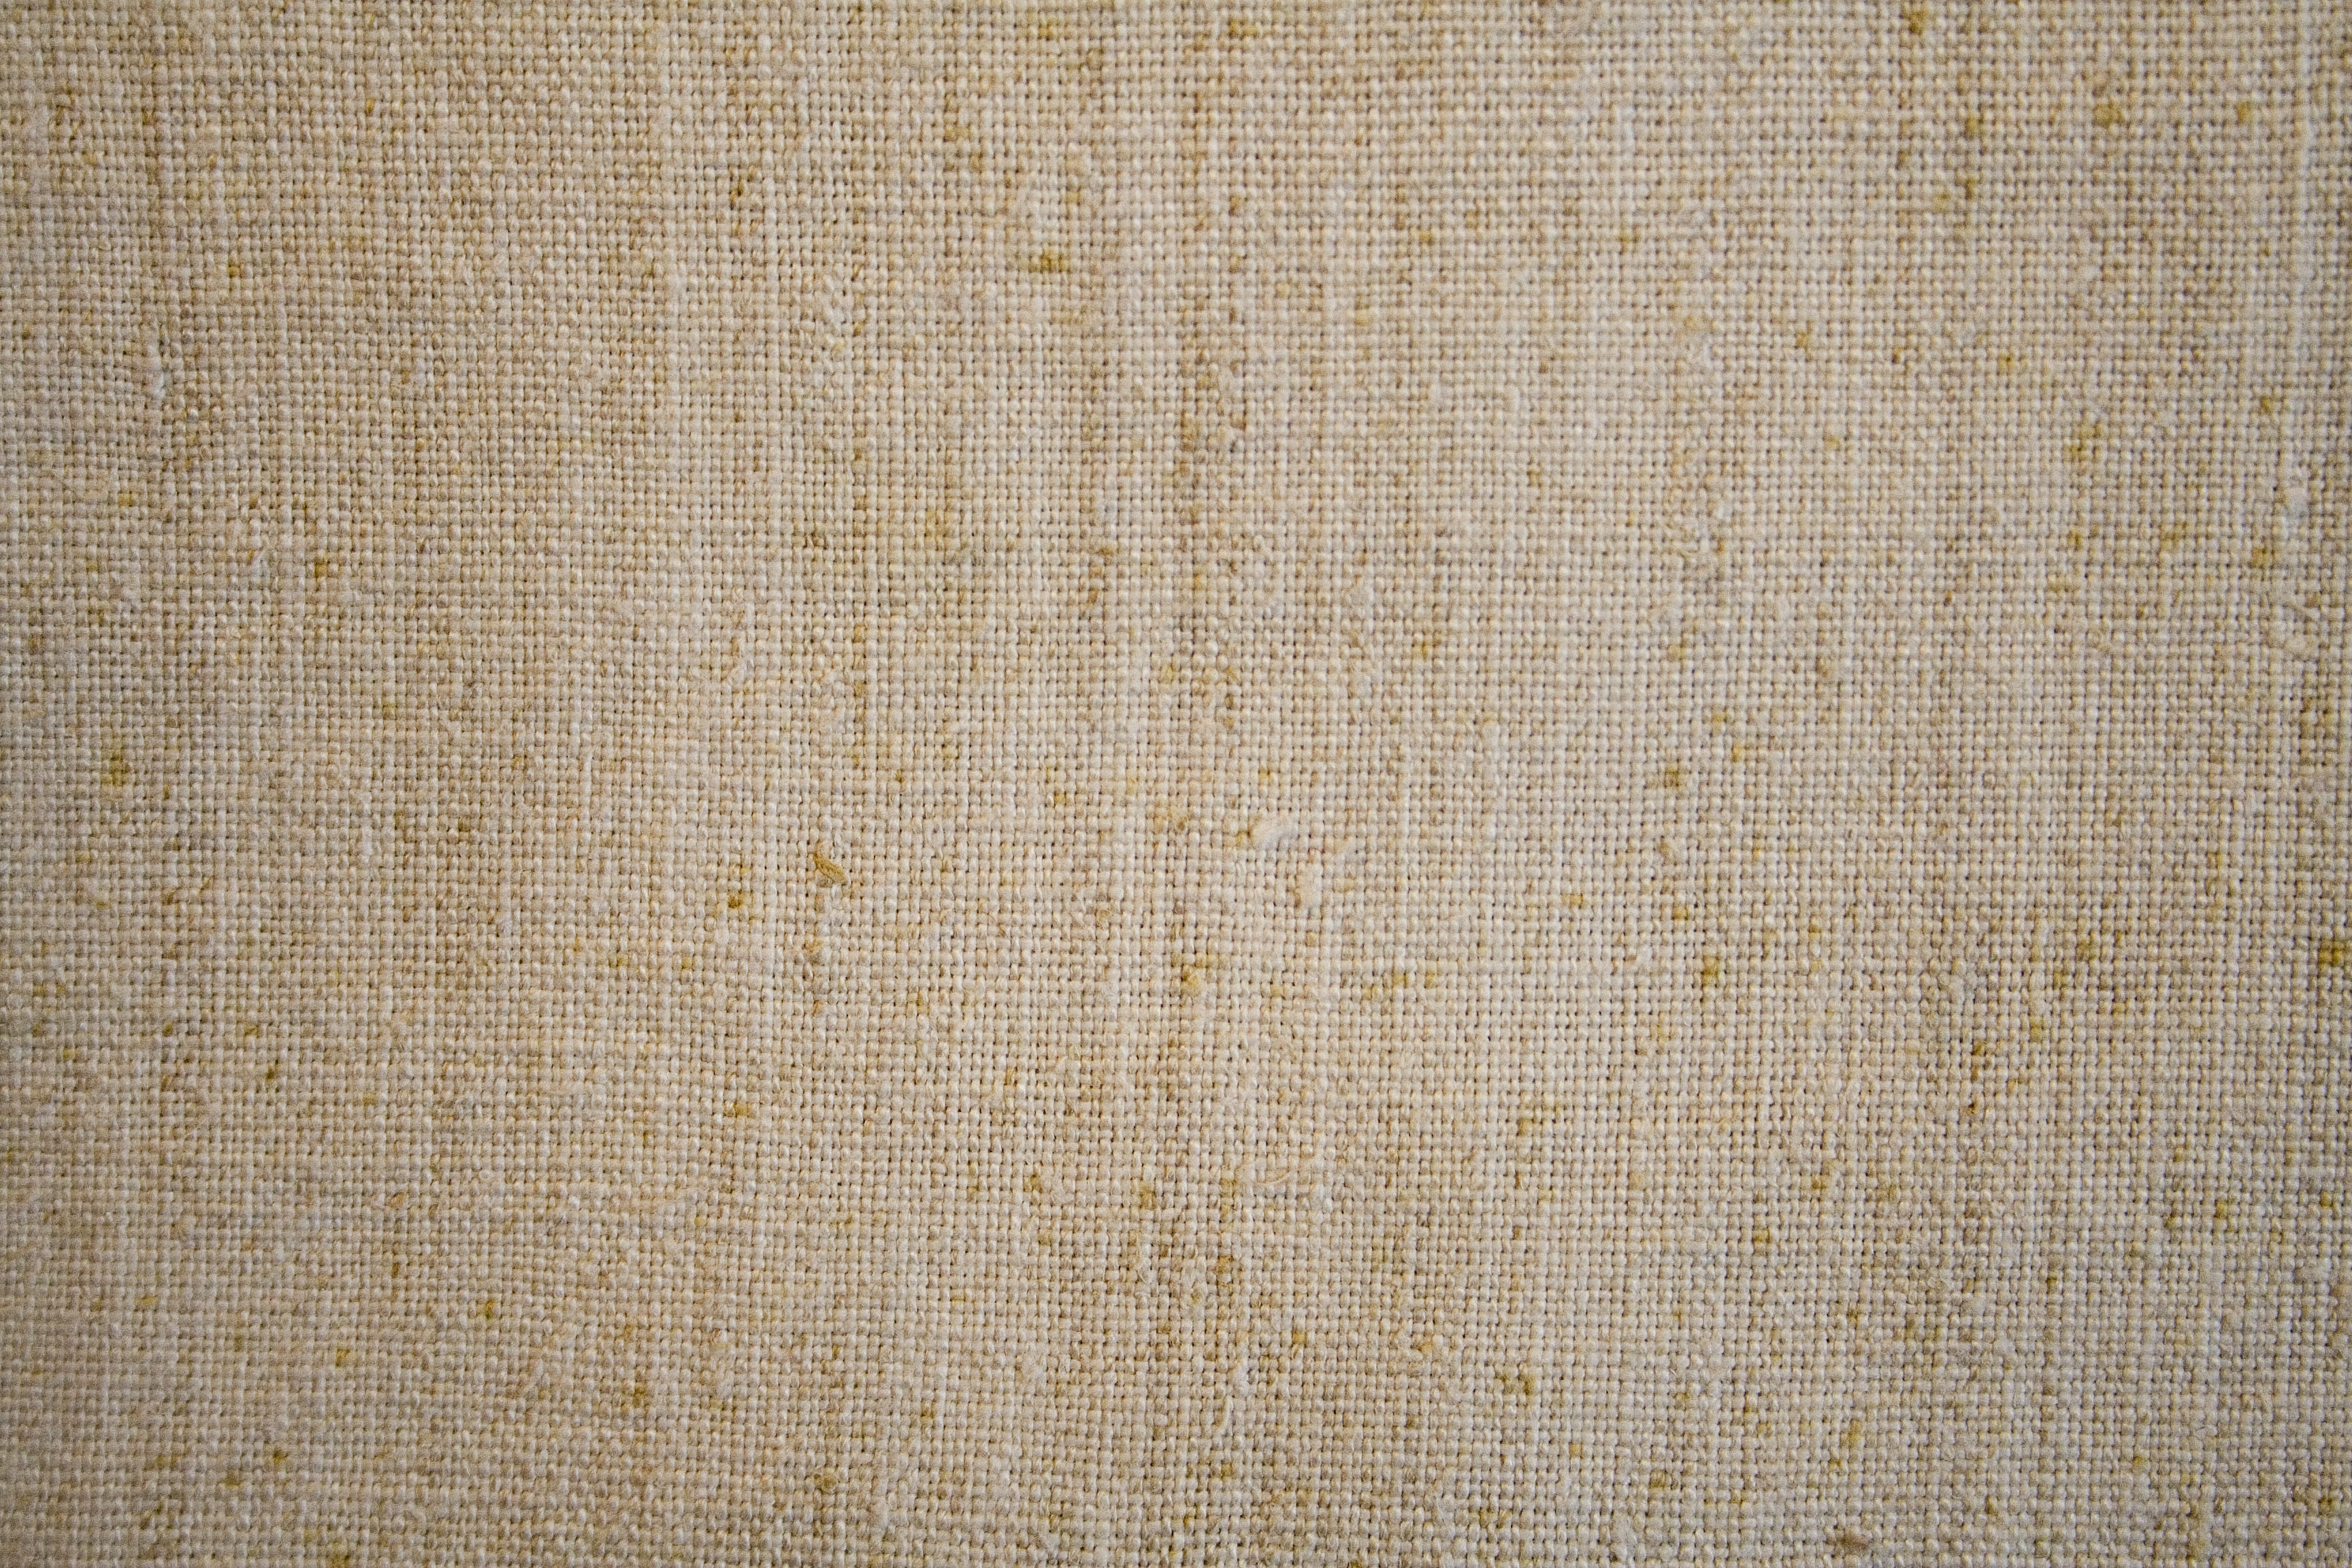 Linen textile texture closeup | Textures for photoshop free for Linen Fabric Textures  45gtk